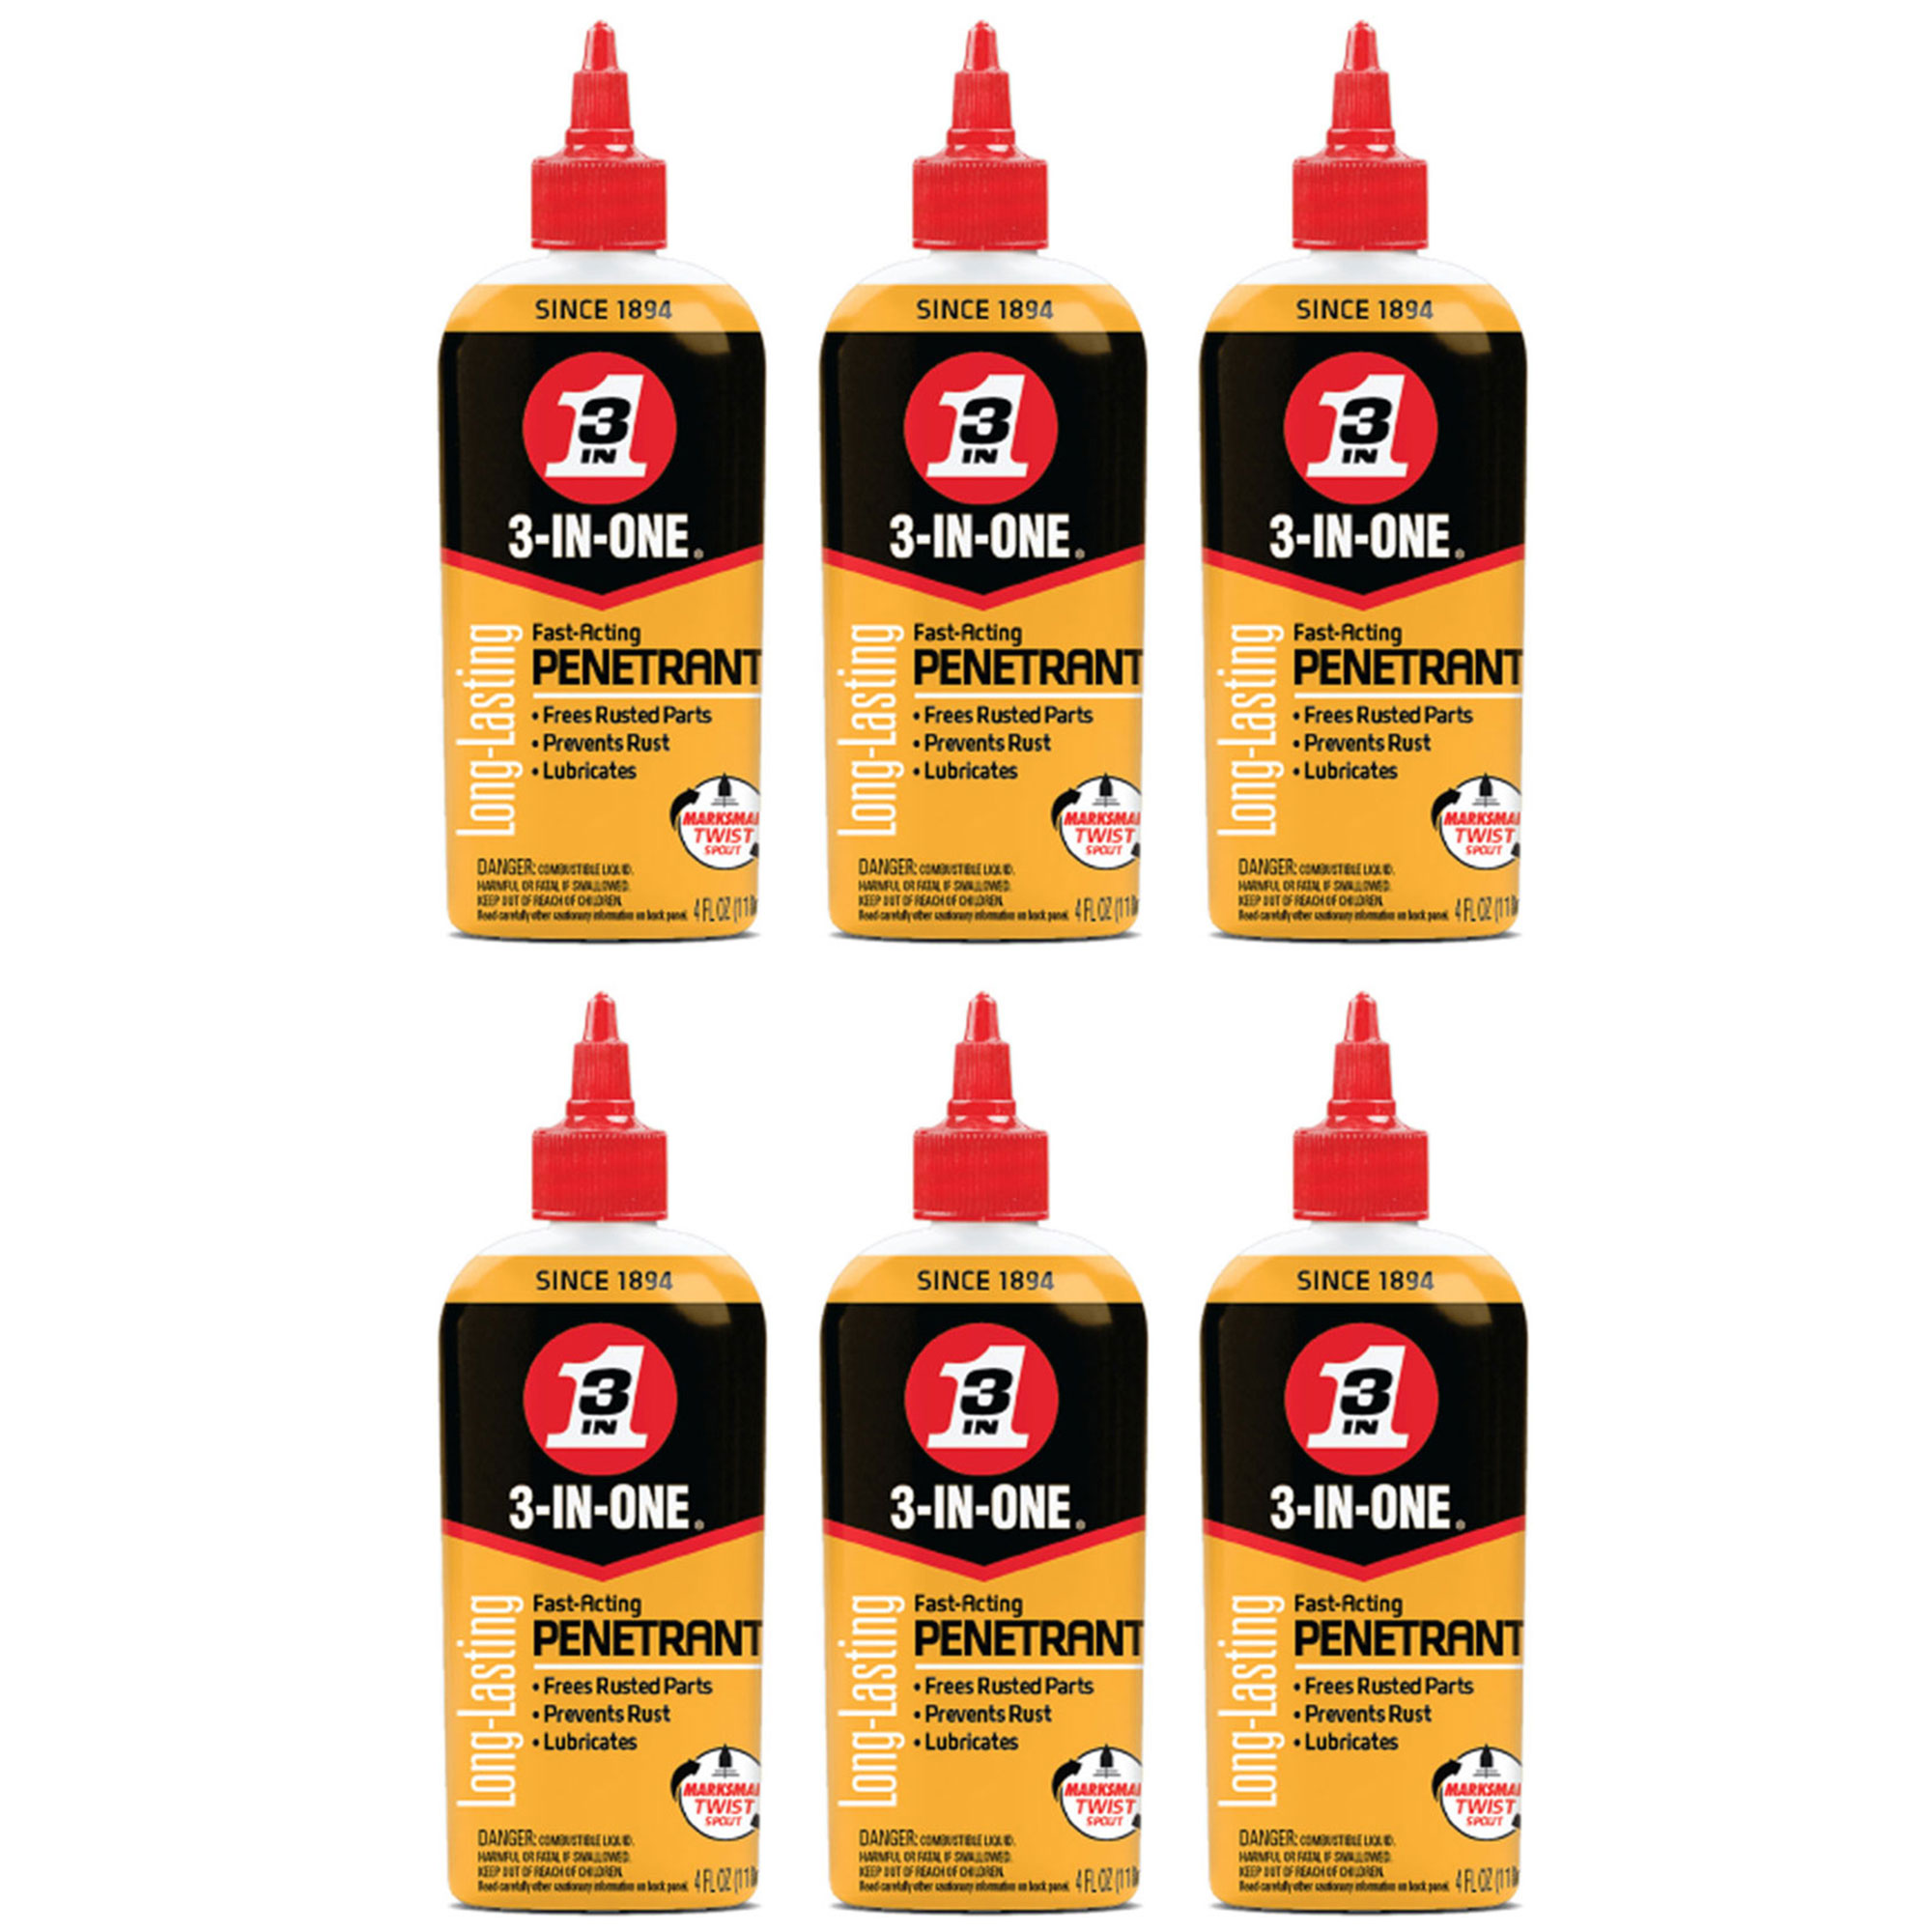 3-IN-ONE 120015 Penetrant Drip Oil to Loosen and Stop Rust, 4 Ounces (6 Pack)